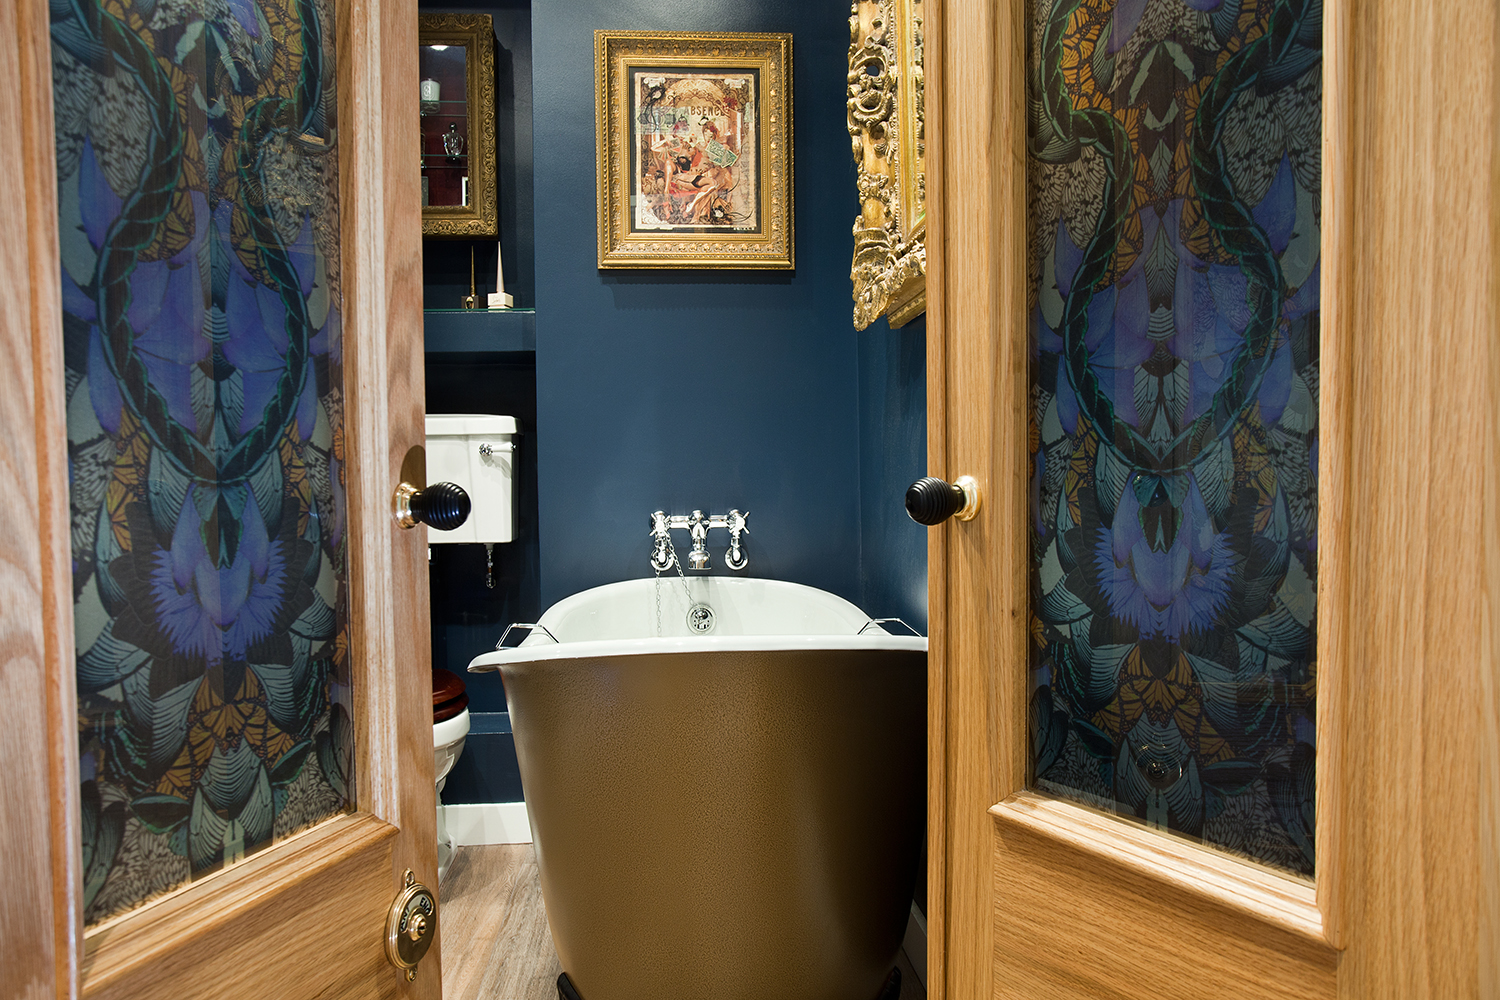 Image: Glamorous bathroom boudoir with rich blue walls and gold accents